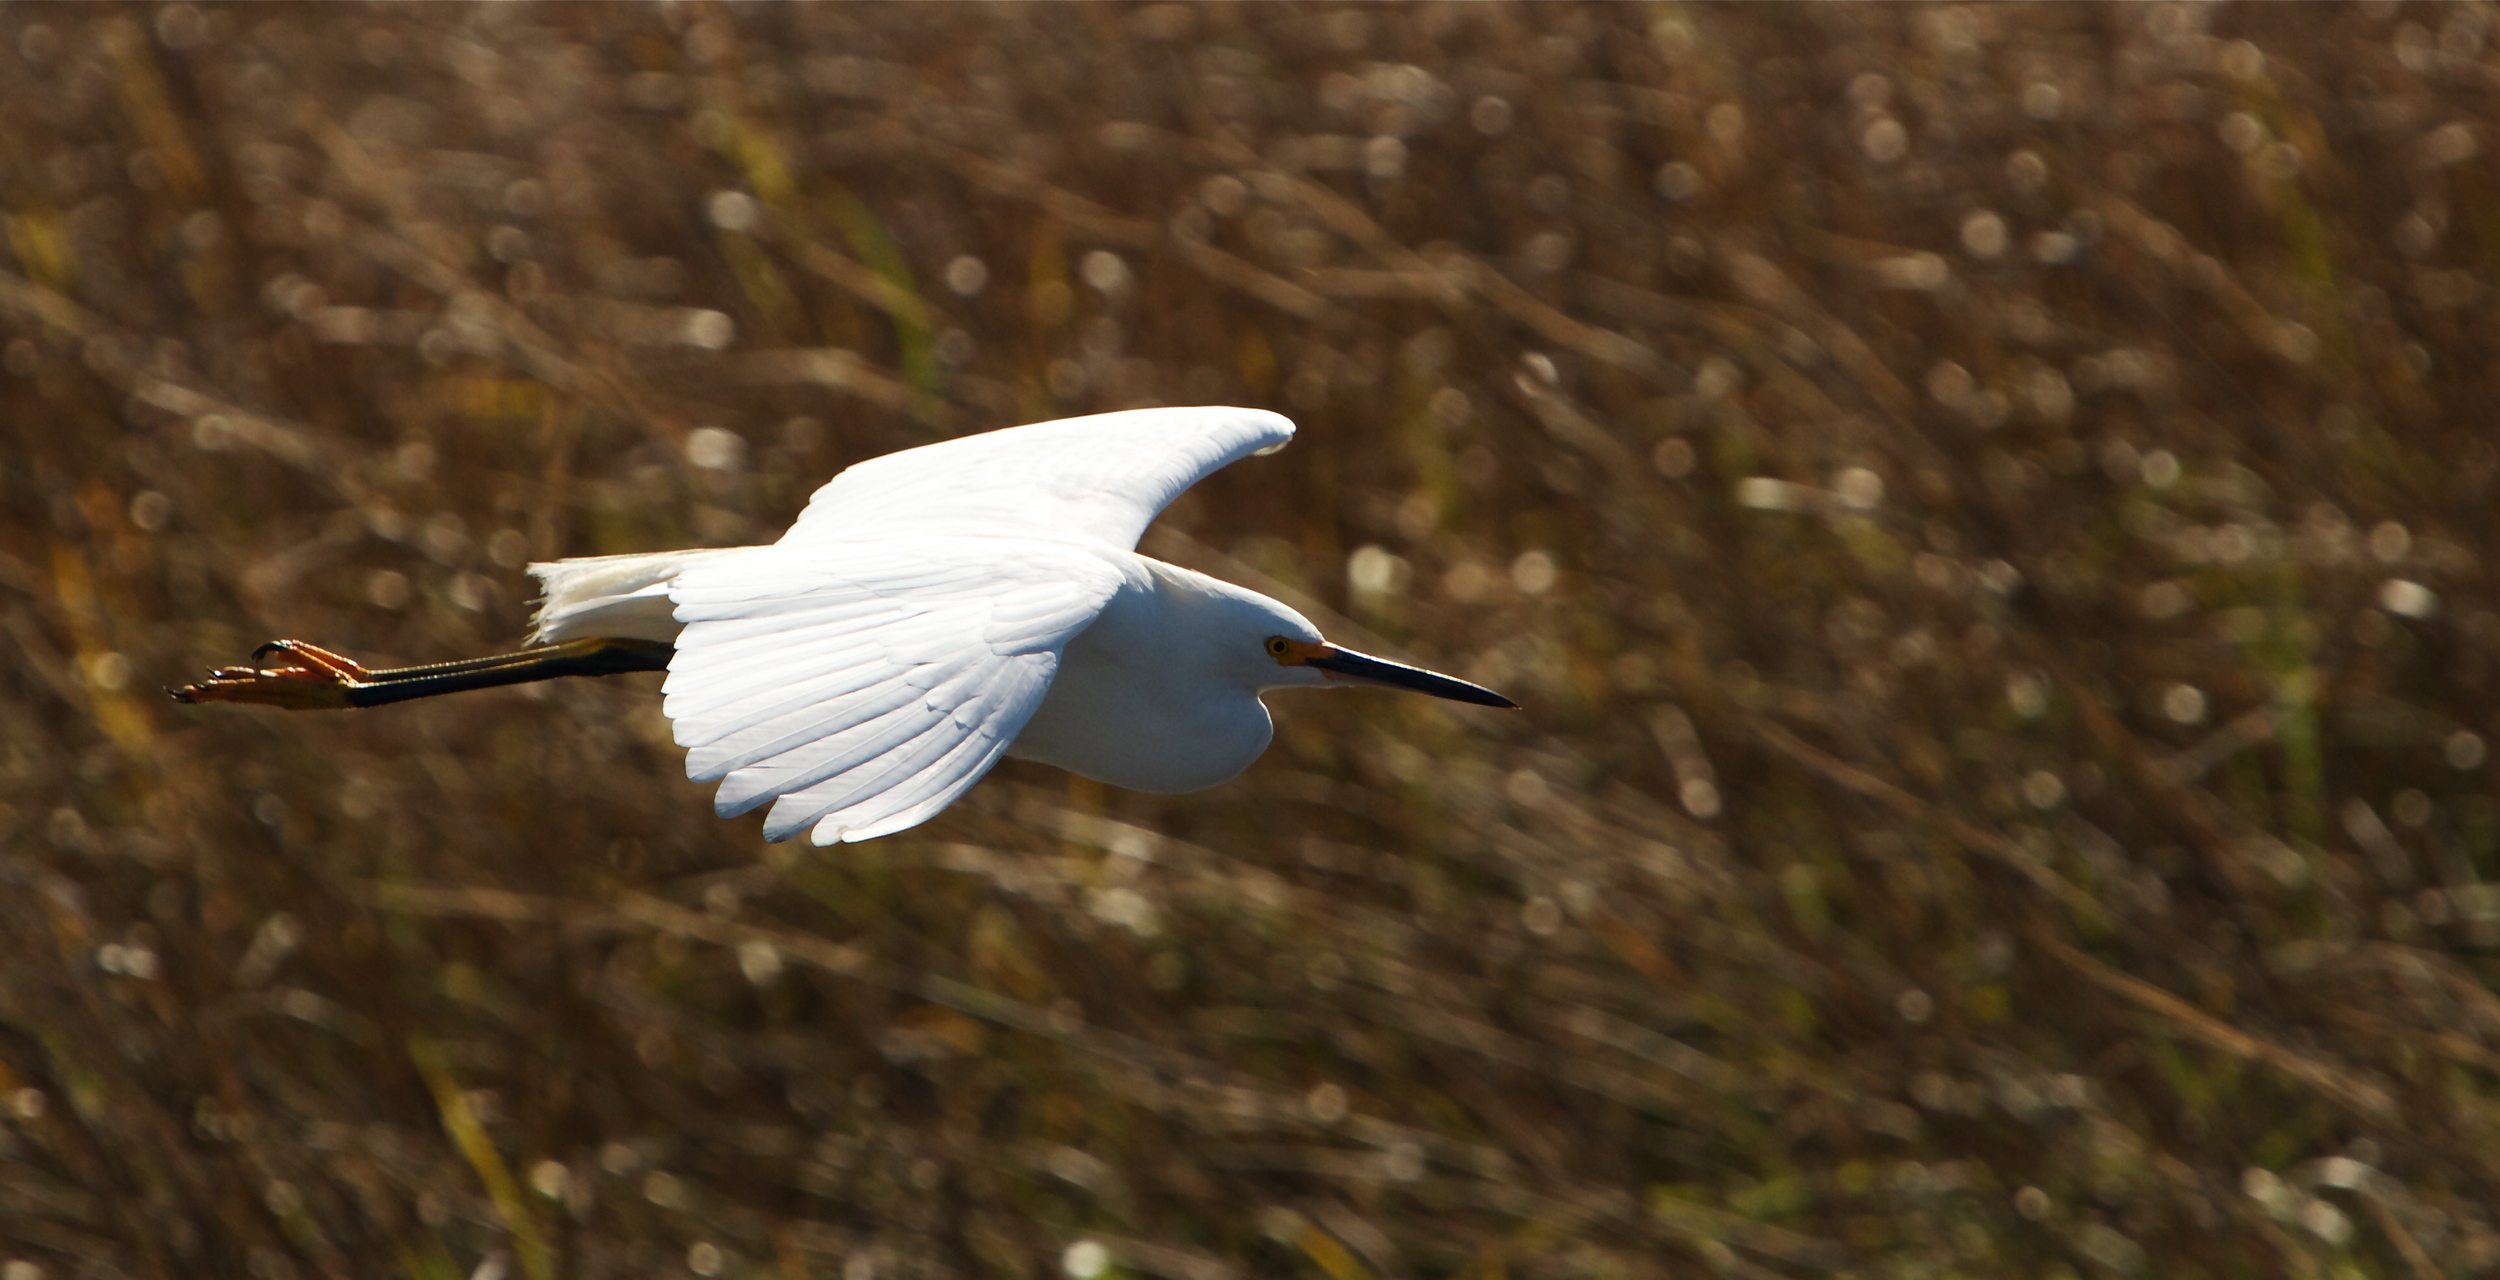 Snowy Egret wings by, the sunlight bright on its wings.